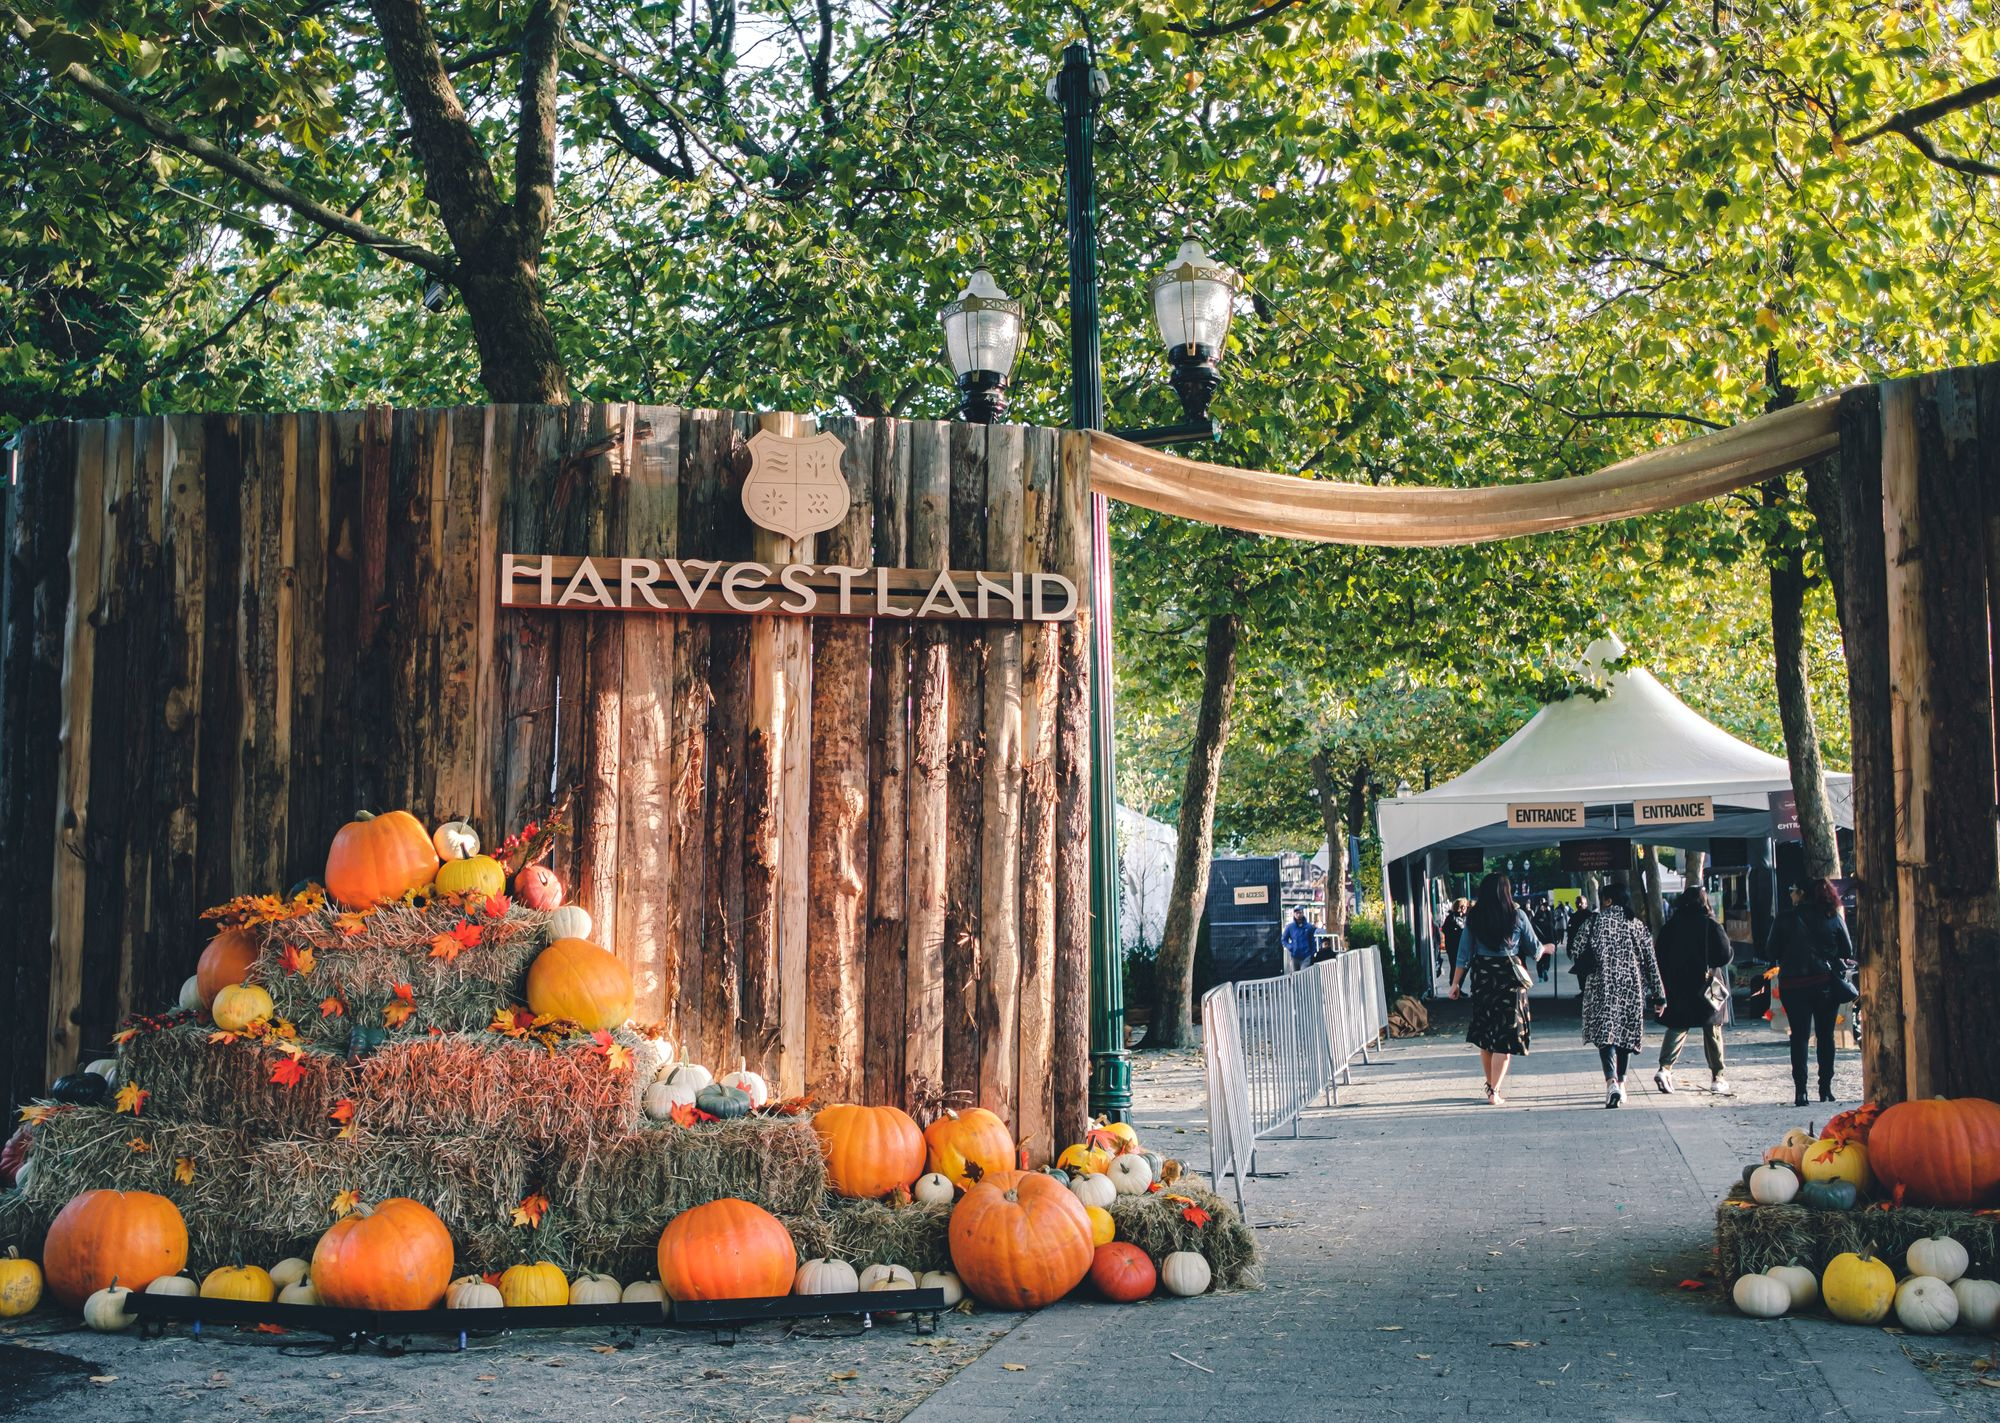 Harvestland and Harvest Haus Entrance